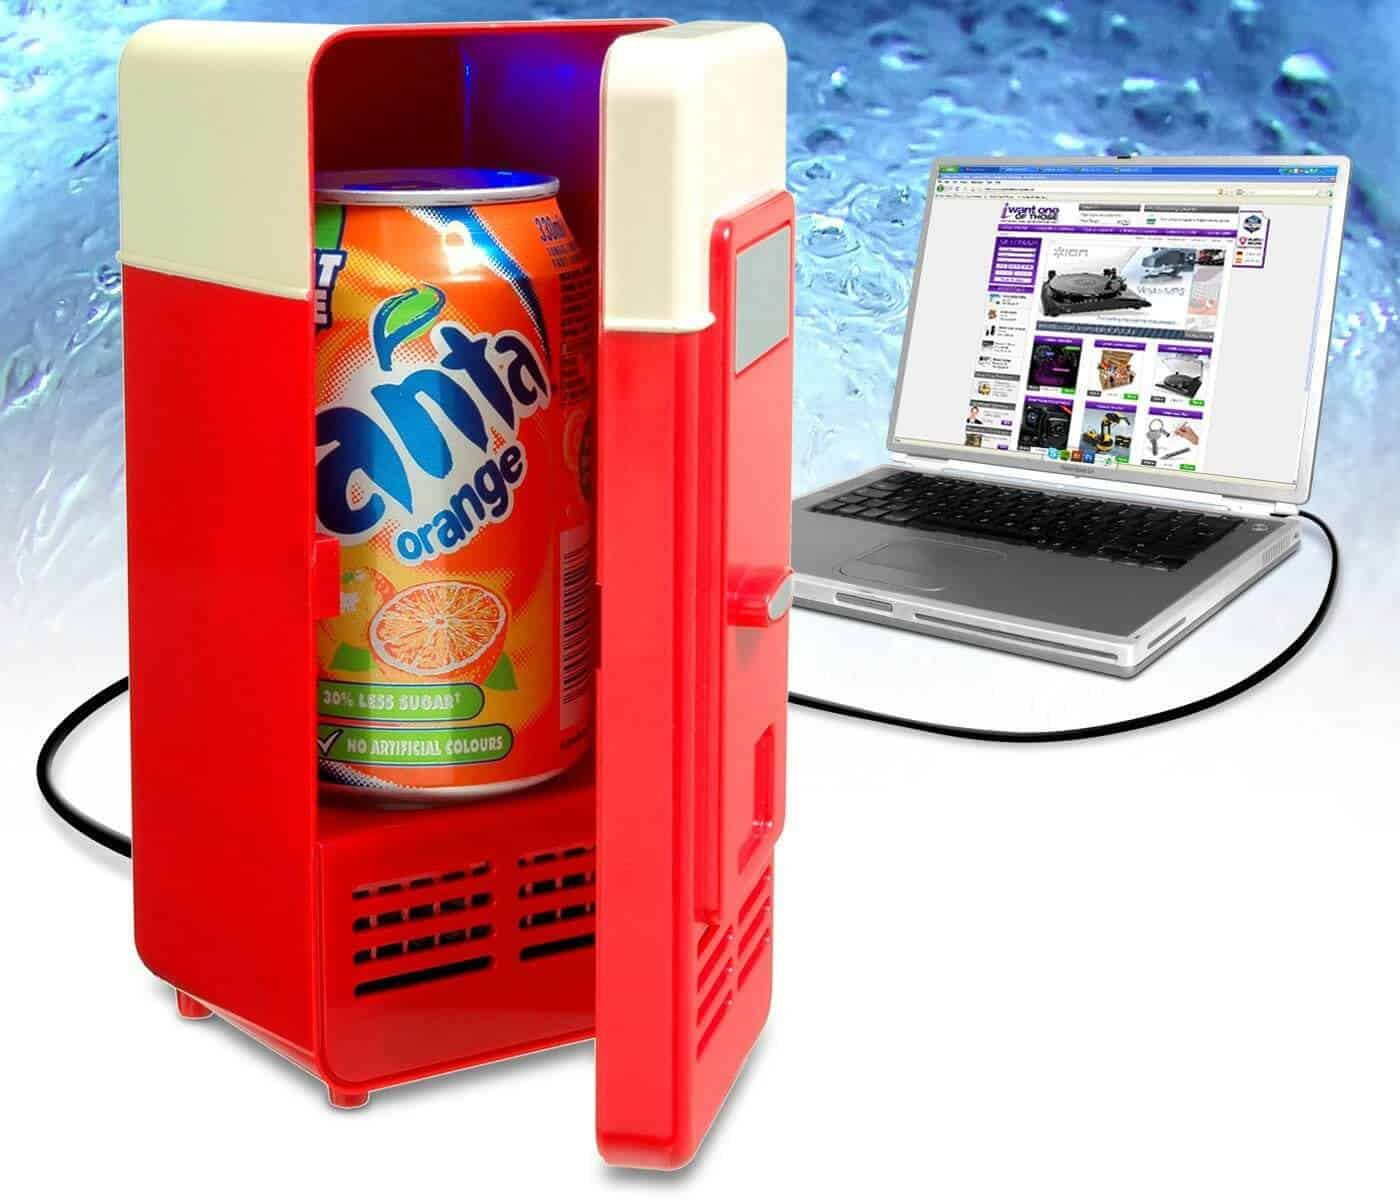 USB mini fridge/ Refrigerator Review